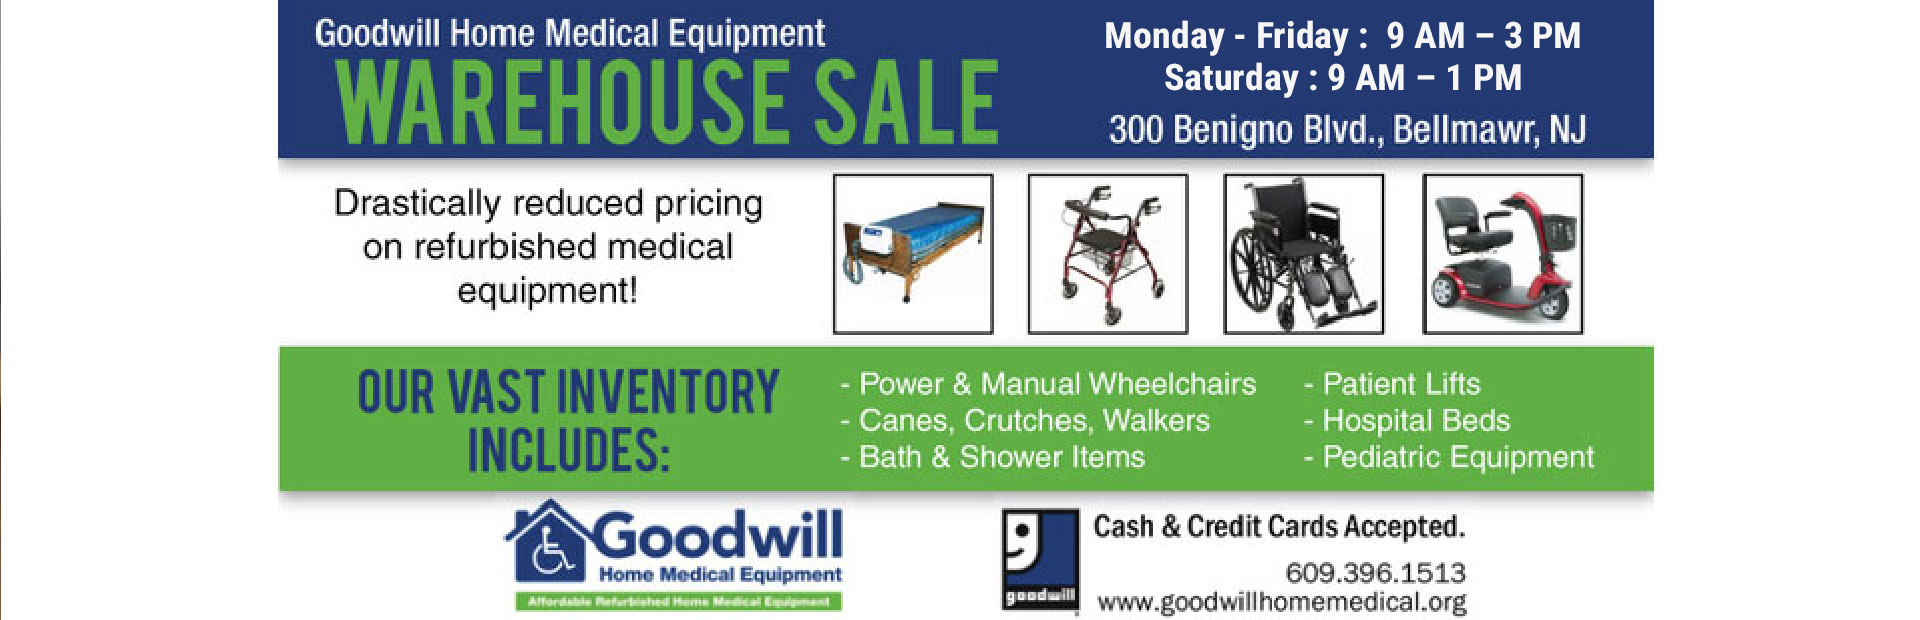 Used Home Medical Equipment | Goodwill Home Medical Equipment